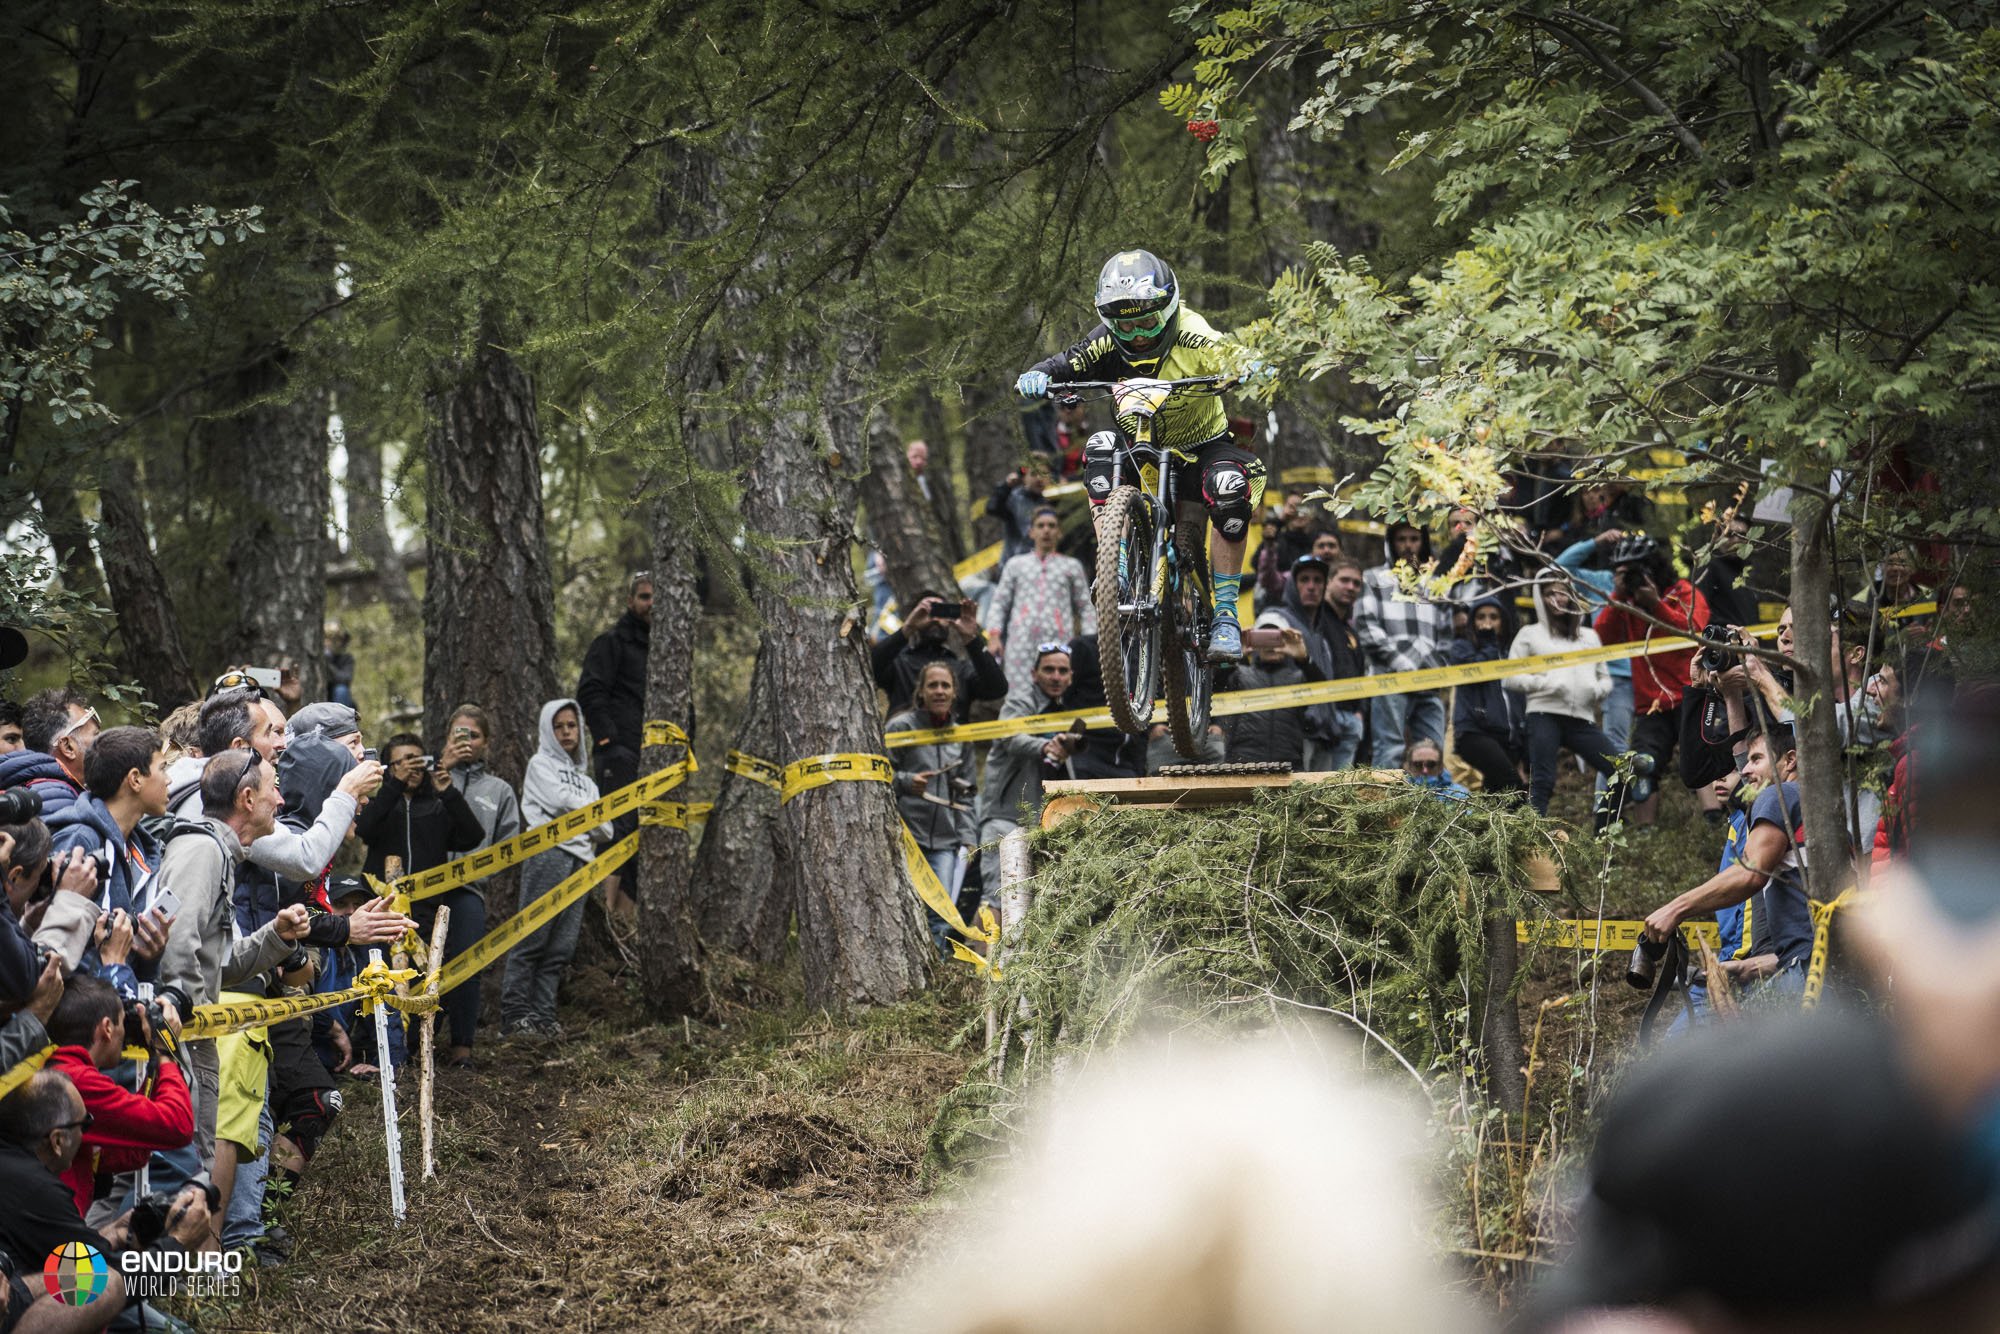 Cecile Ravanel (Commencal Vallnord Enduro Team) has won six races this year, giving the Frenchwoman an insurmountable lead in the overall standings. Photo courtesy Enduro World Series